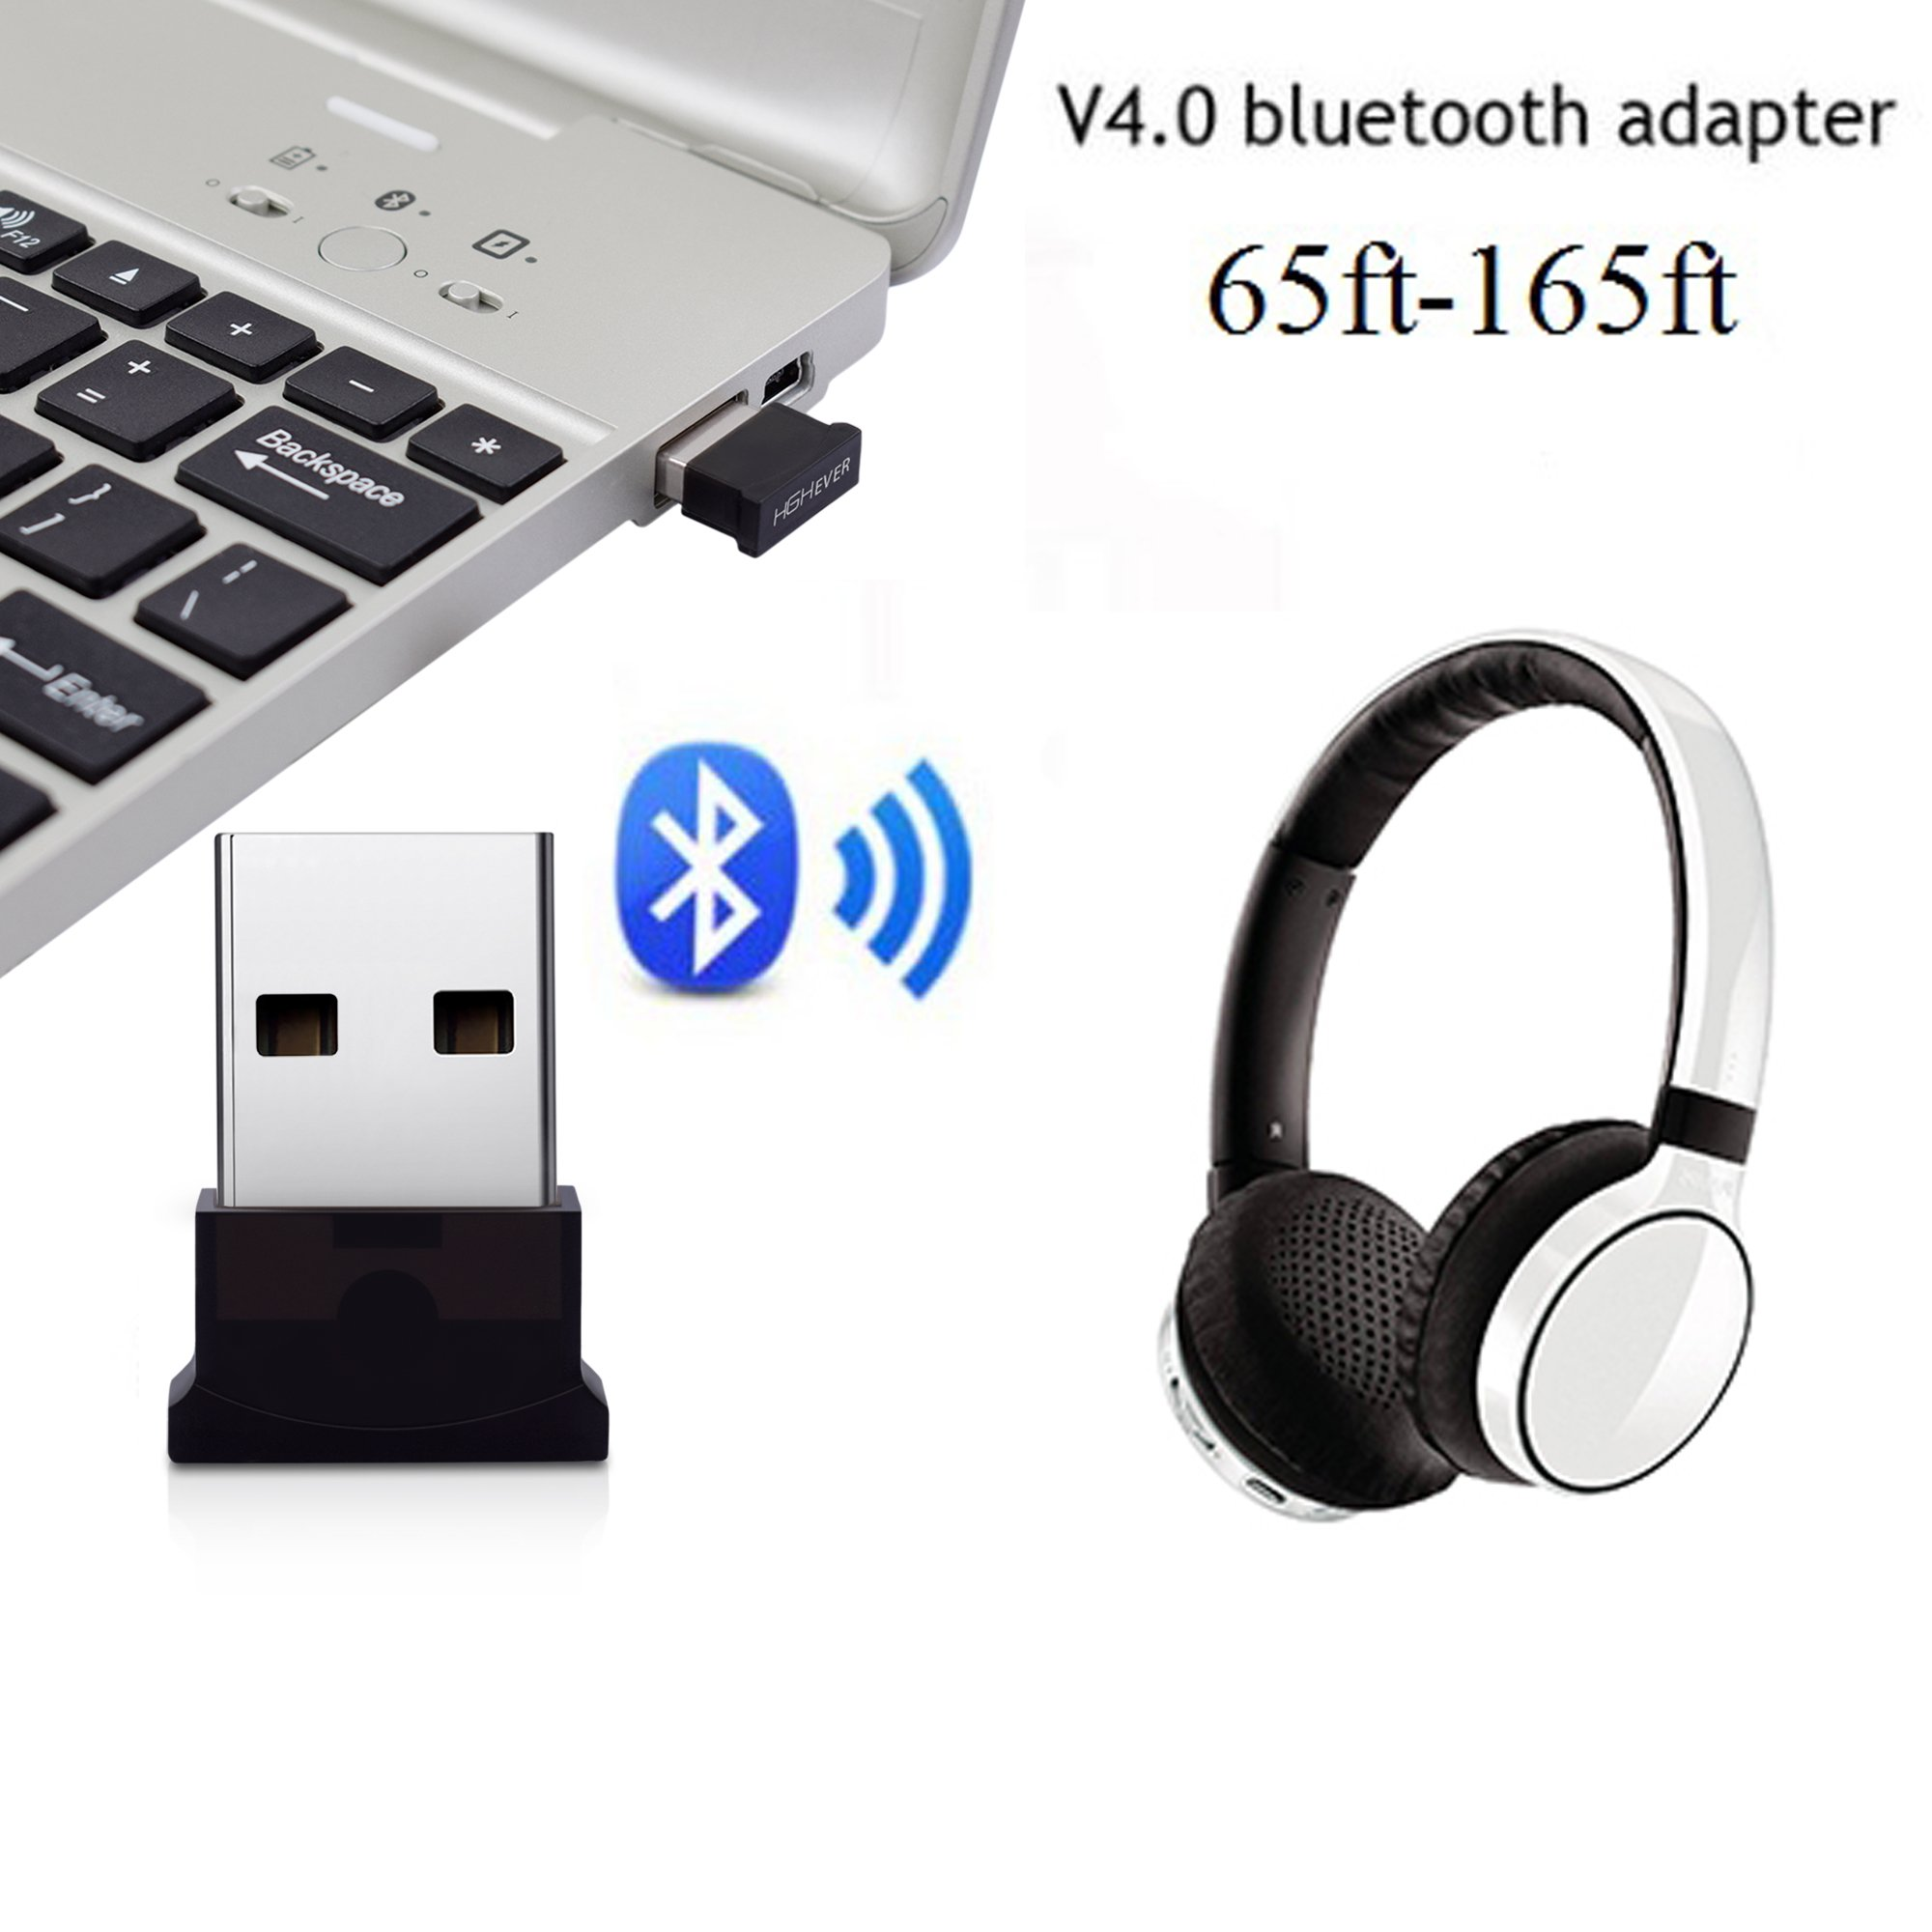 Bluetooth USB Adapter, 4.0 Bluetooth Low Energy 2.4Ghz Range Wireless USB Dongle Adapter for PC, Windows 10/8.1/8/7, Vista/XP by HIGHEVER (Image #2)